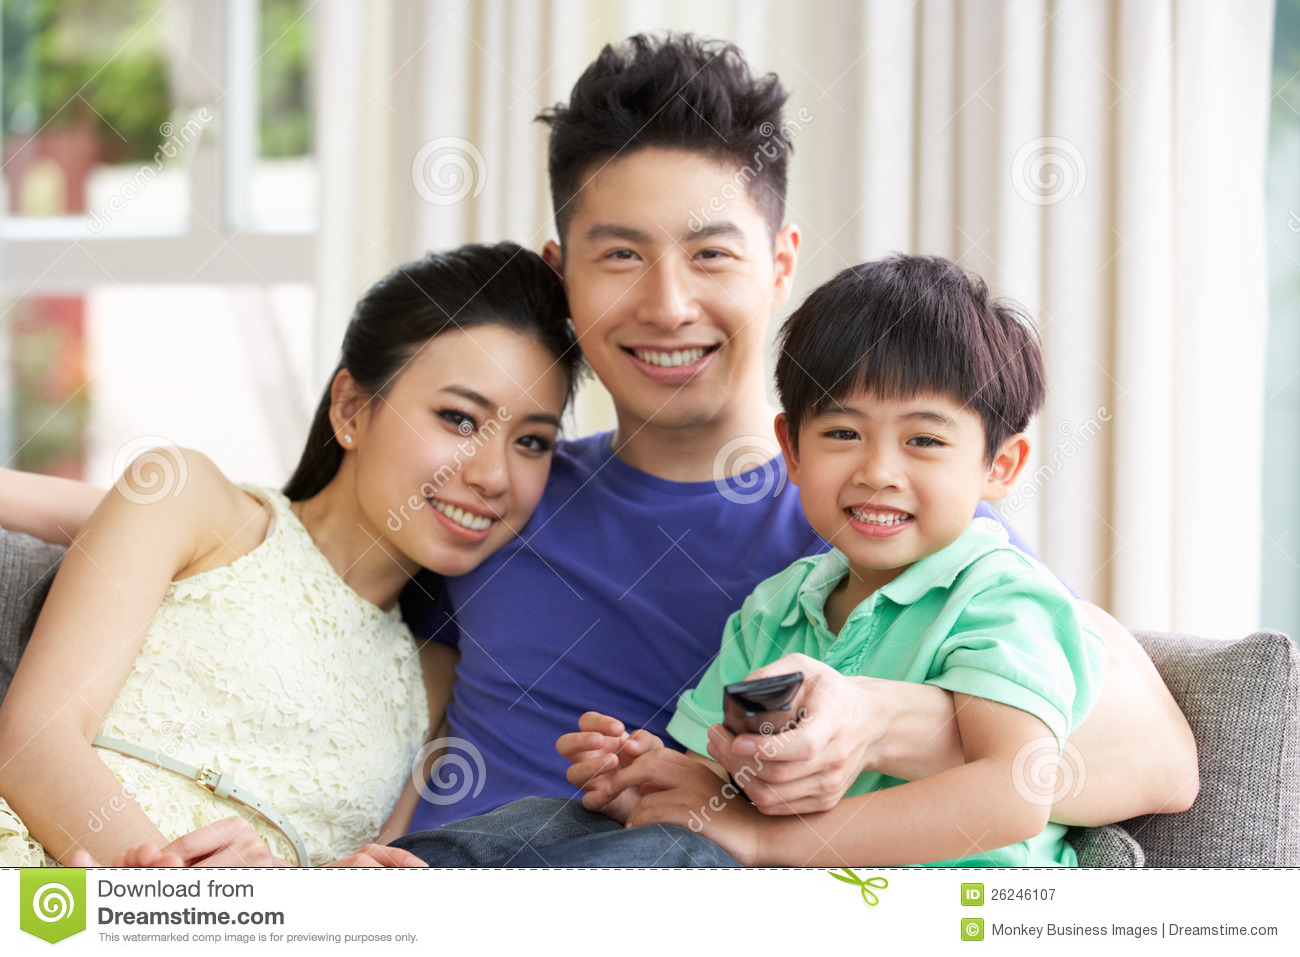 Chinese dating with the parents watch online